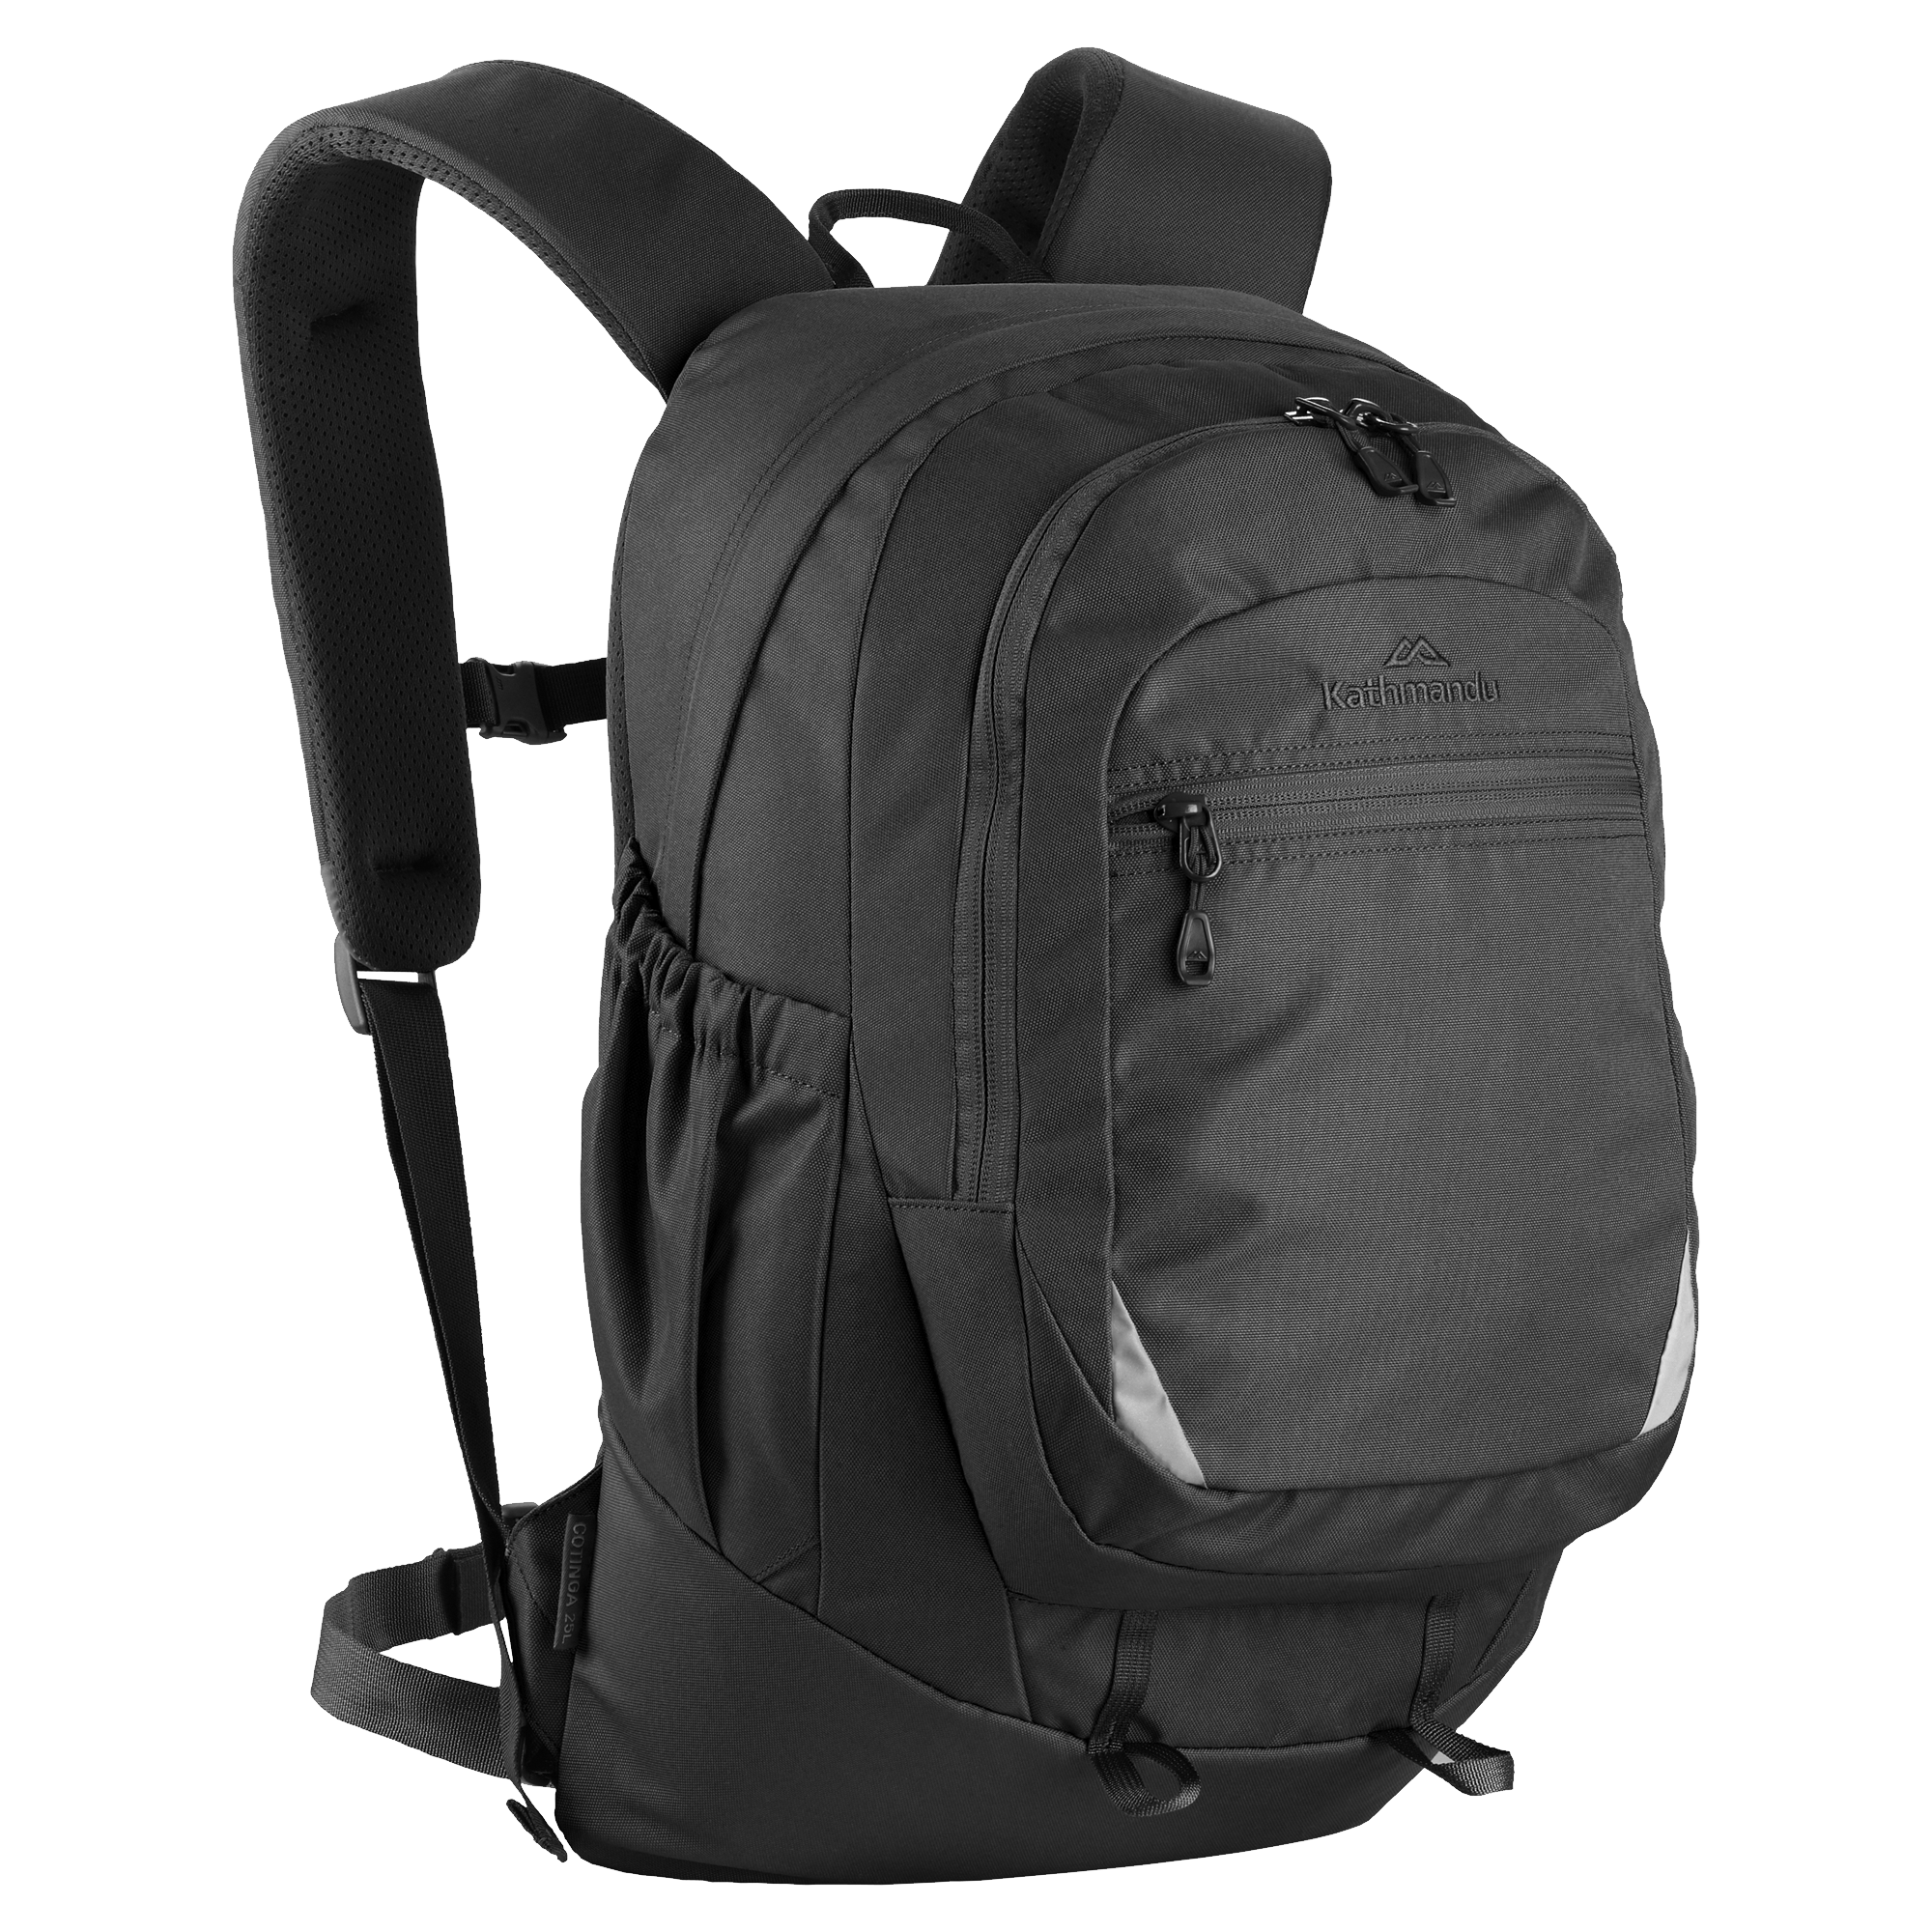 Kathmandu Black Backpack transparent PNG.